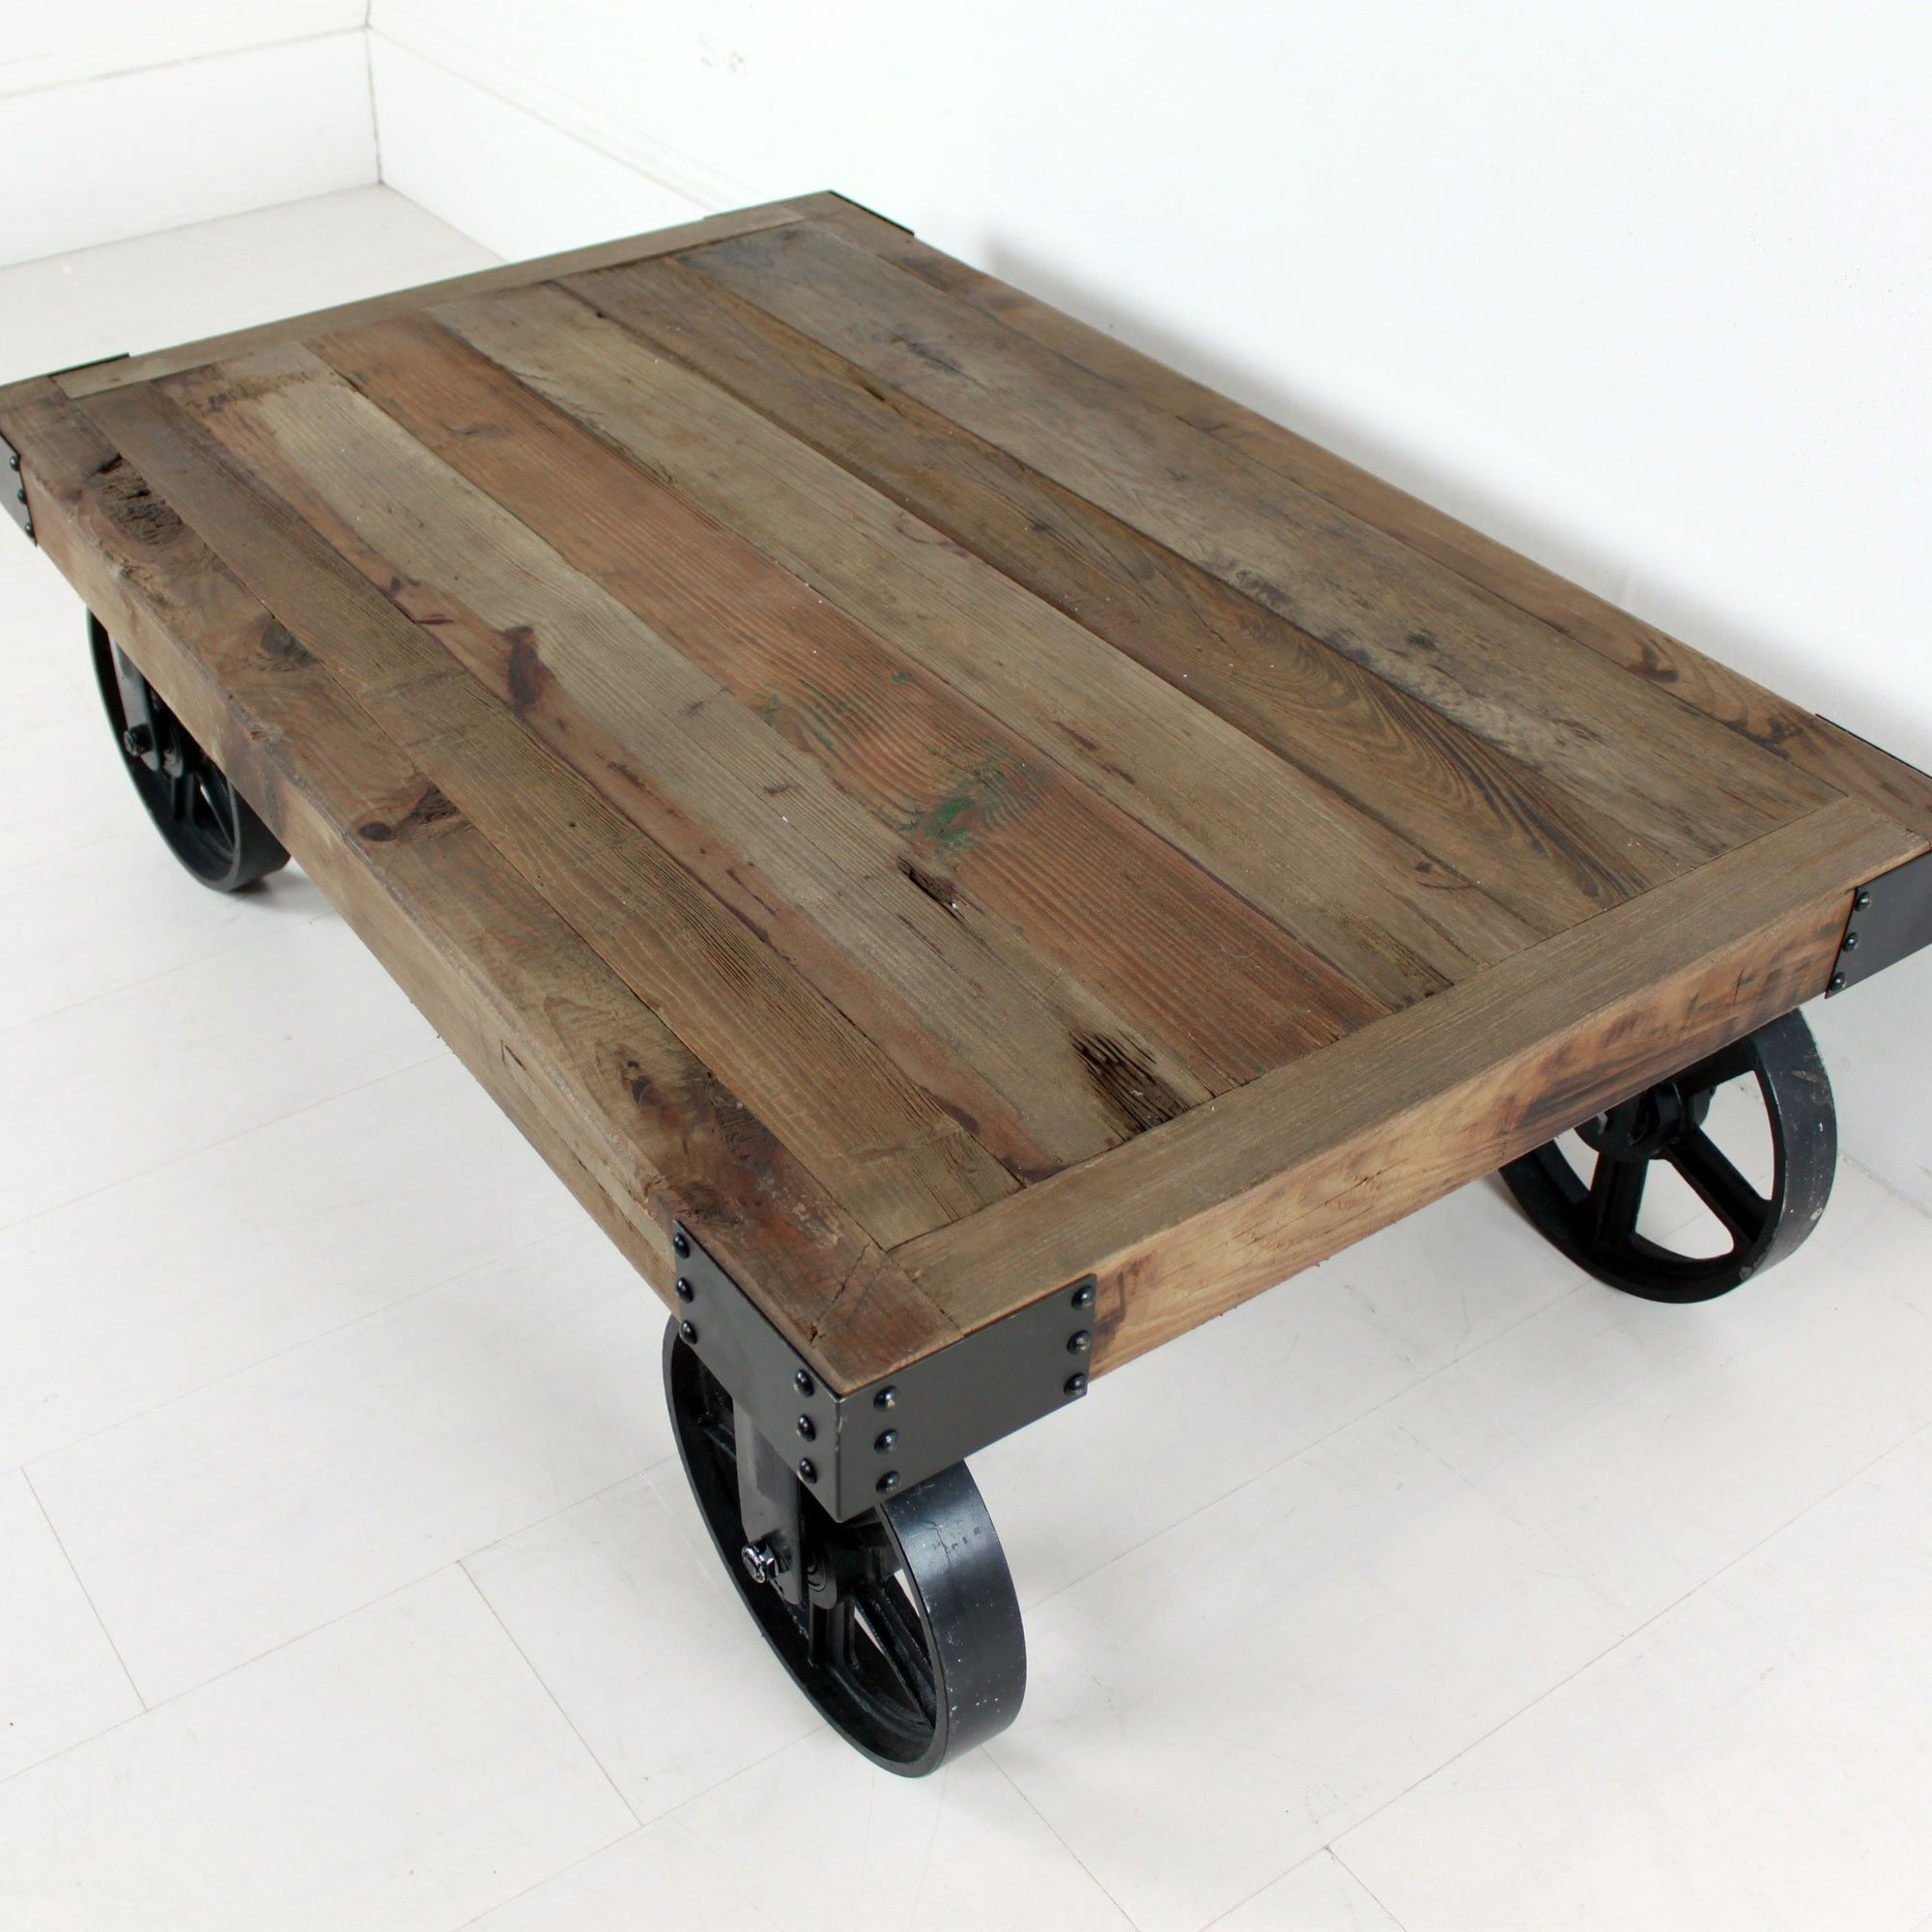 Ordinaire Industrial Coffee Table With Wheels | Wheeled Coffee Table